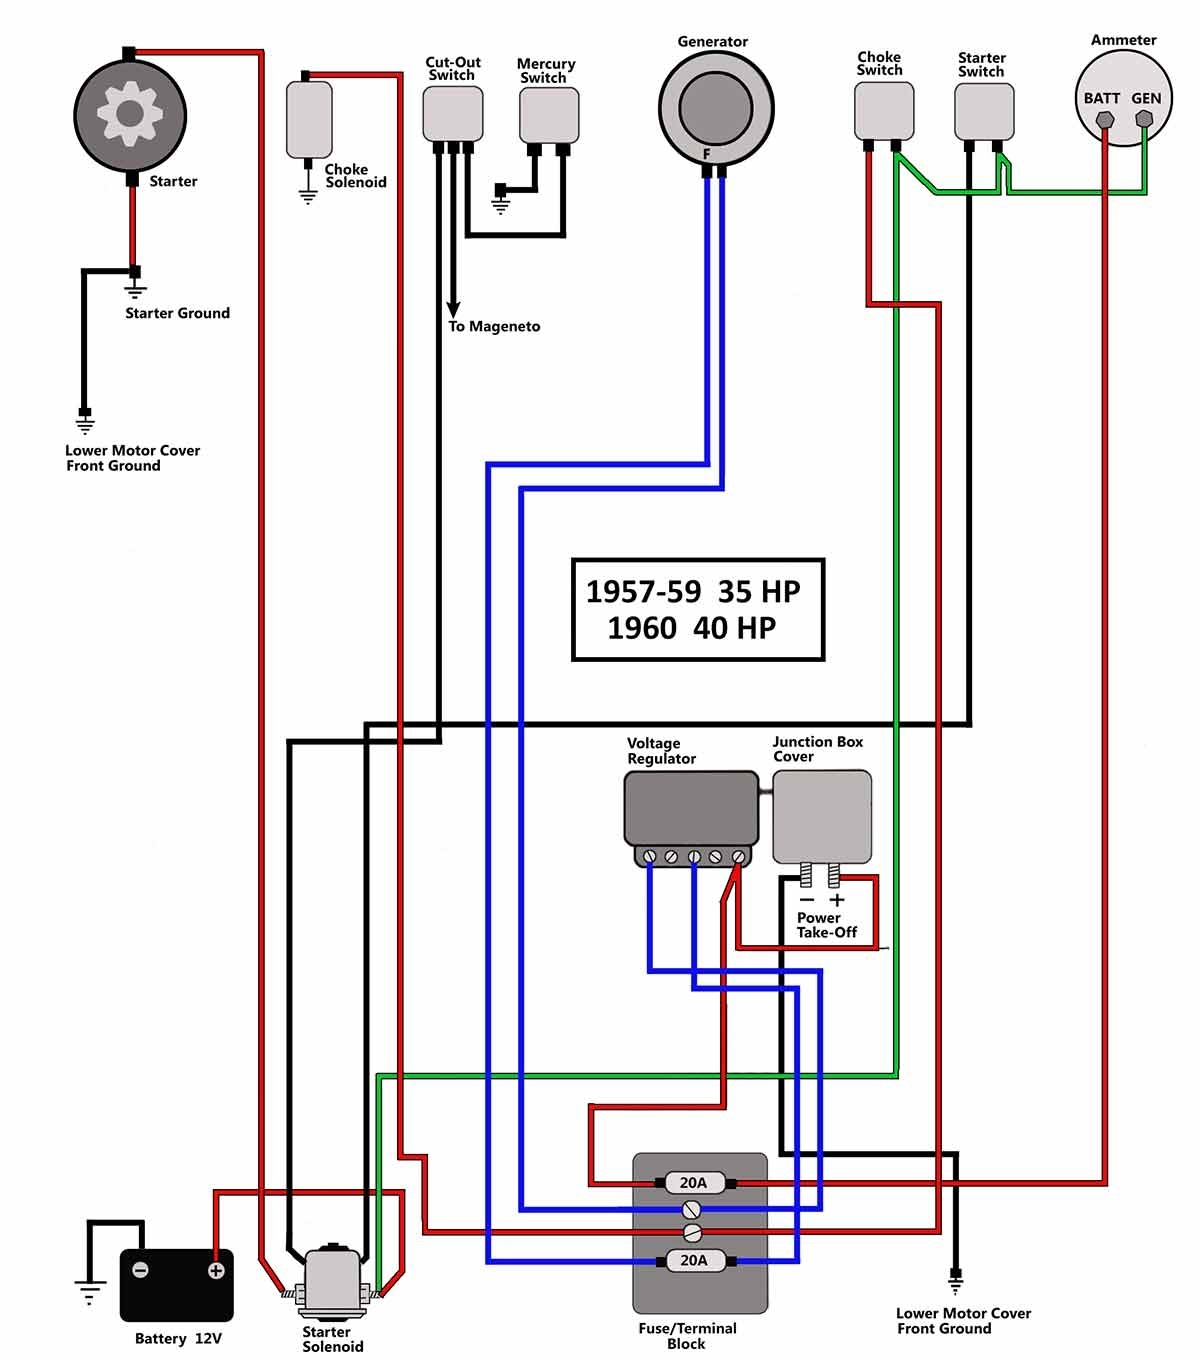 vdo gauges wiring diagrams and boat tach diagram e z go golf cart for boat gauge wiring diagram for tachometer?resize\=665%2C755\&ssl\=1 vdo gauge wiring diagram boat vdo wiring diagrams vdo fuel sender wiring diagram at readyjetset.co